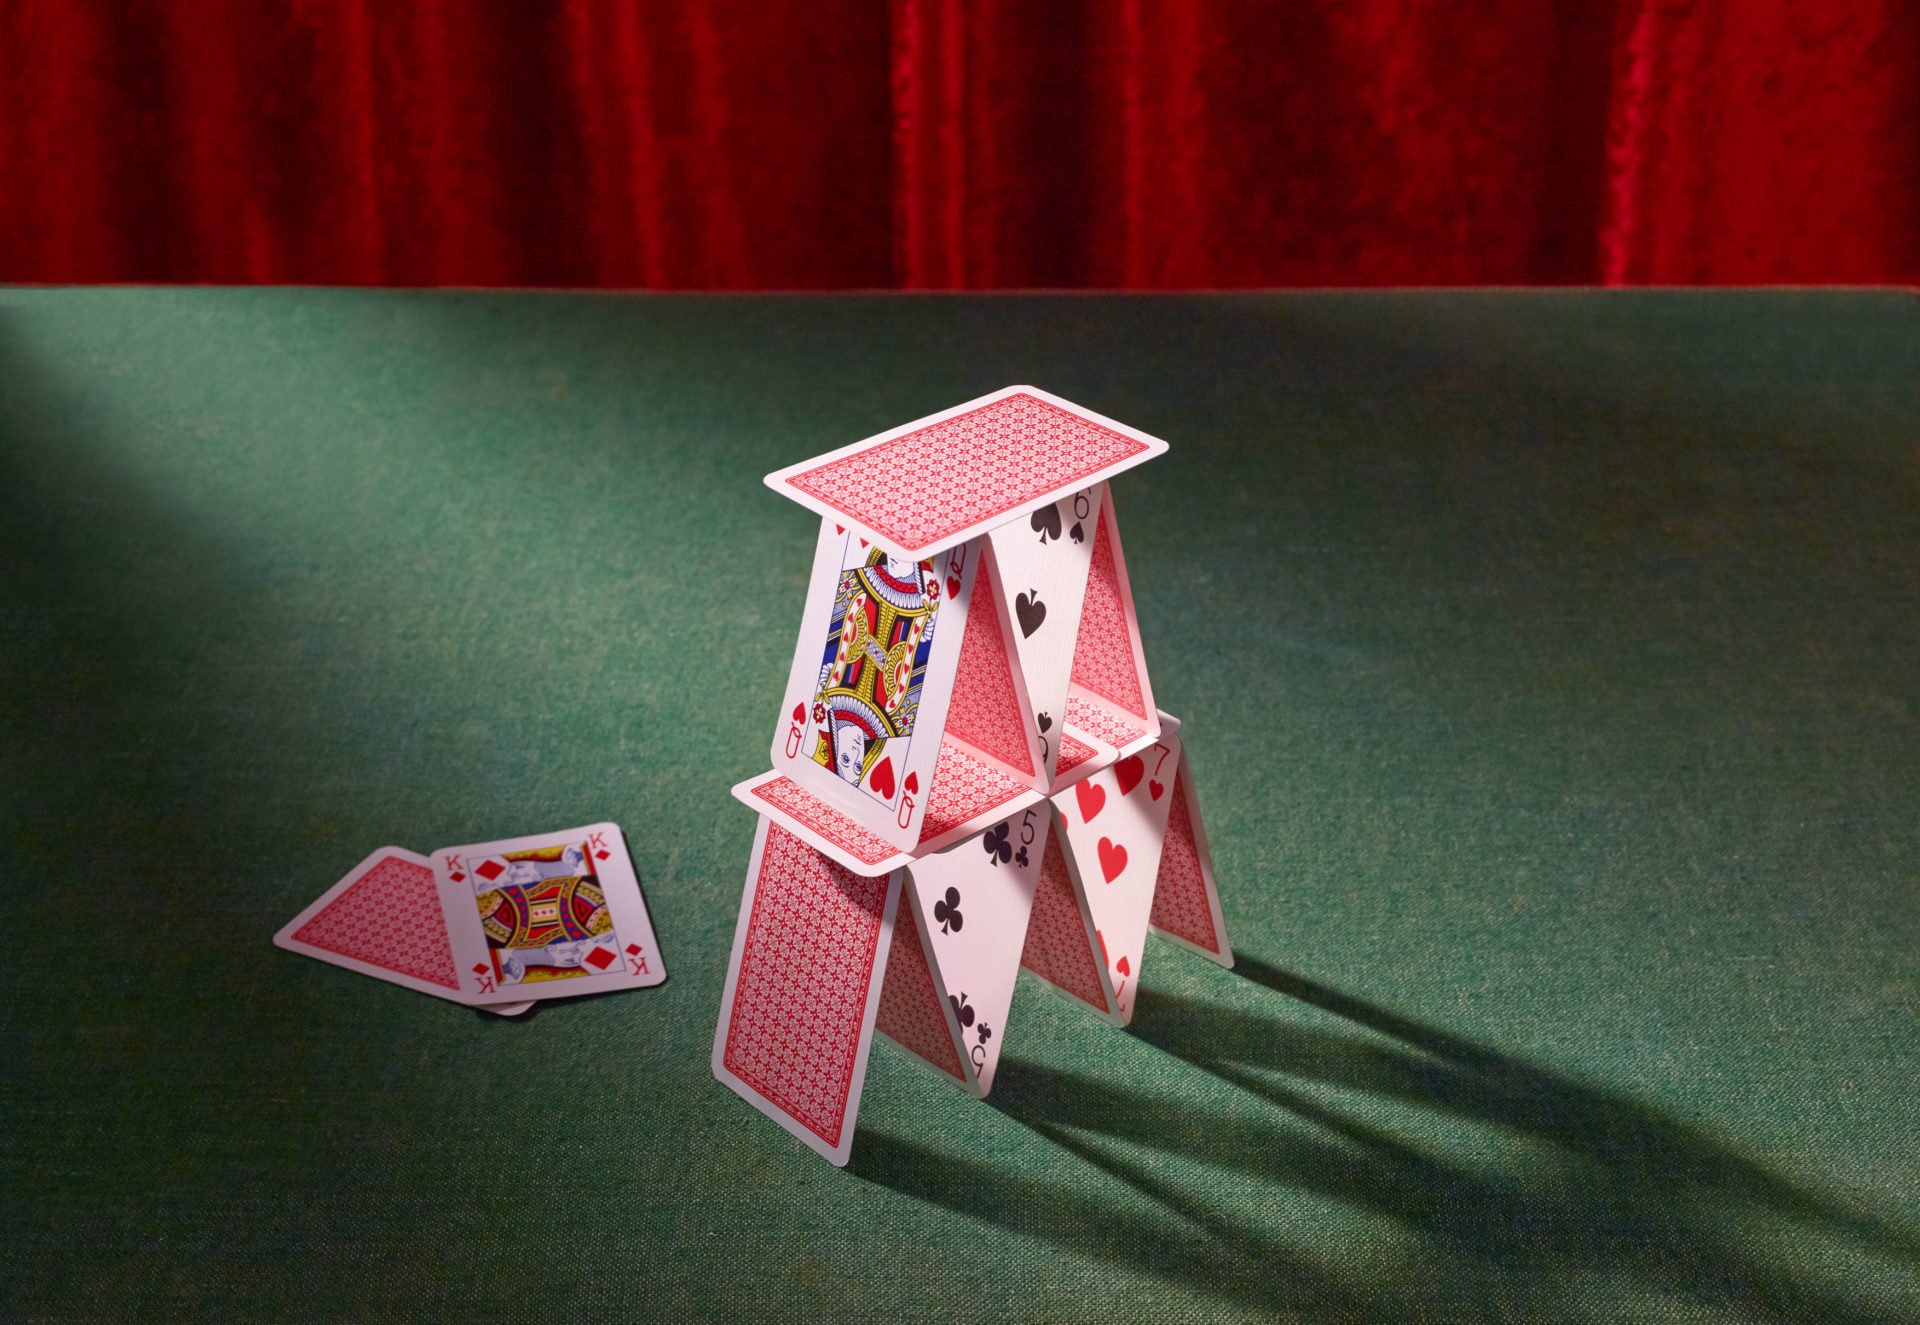 Shaw and Shaw Photography – Shaw & Shaw Photographers – Ladybird Books – House of cards – card table